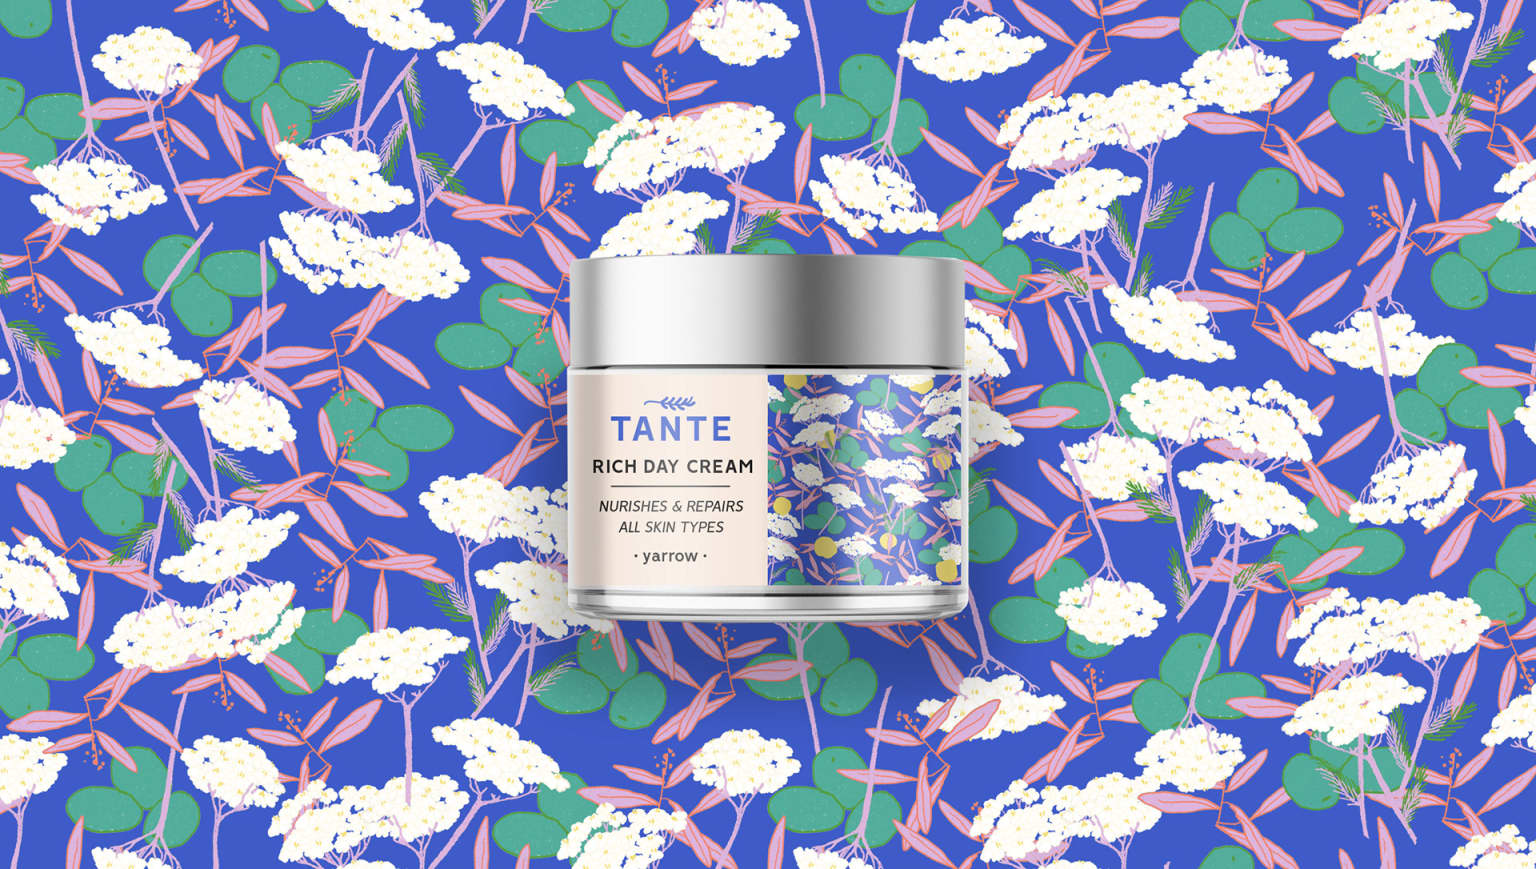 Tante cosmetics | Visual Identity